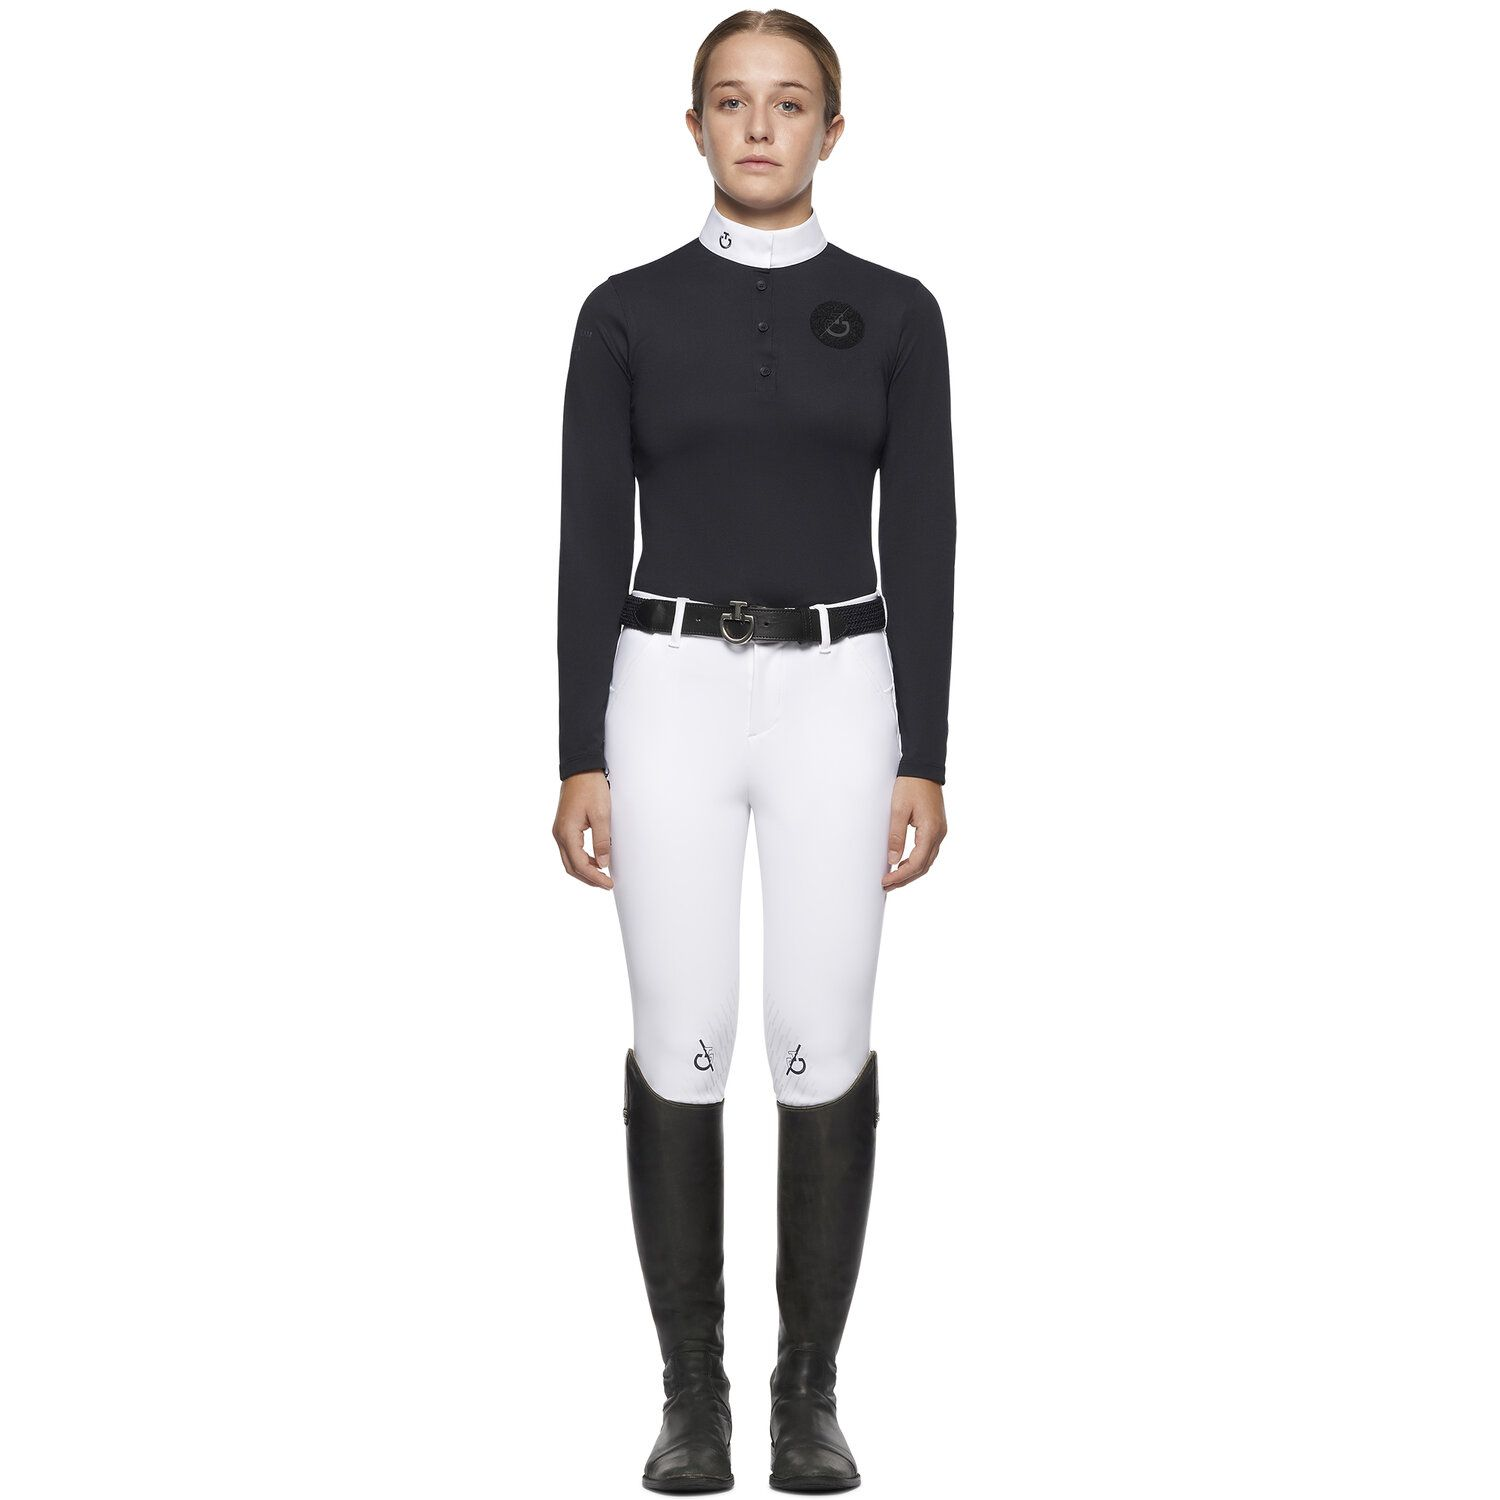 TEAM girl long sleeve competition polo